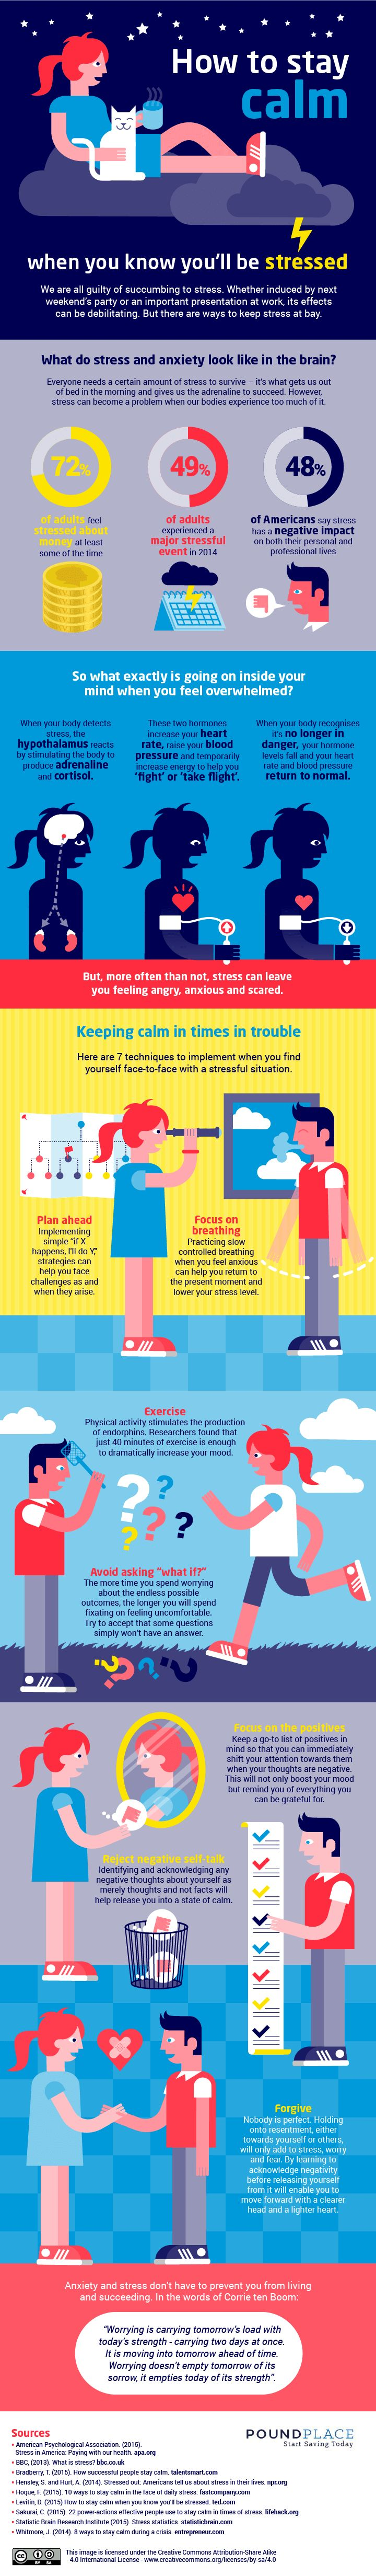 How To Stay Calm When You Know You'll Be Stressed Infographic - http://elearninginfographics.com/stay-calm-when-stressed-infographic/